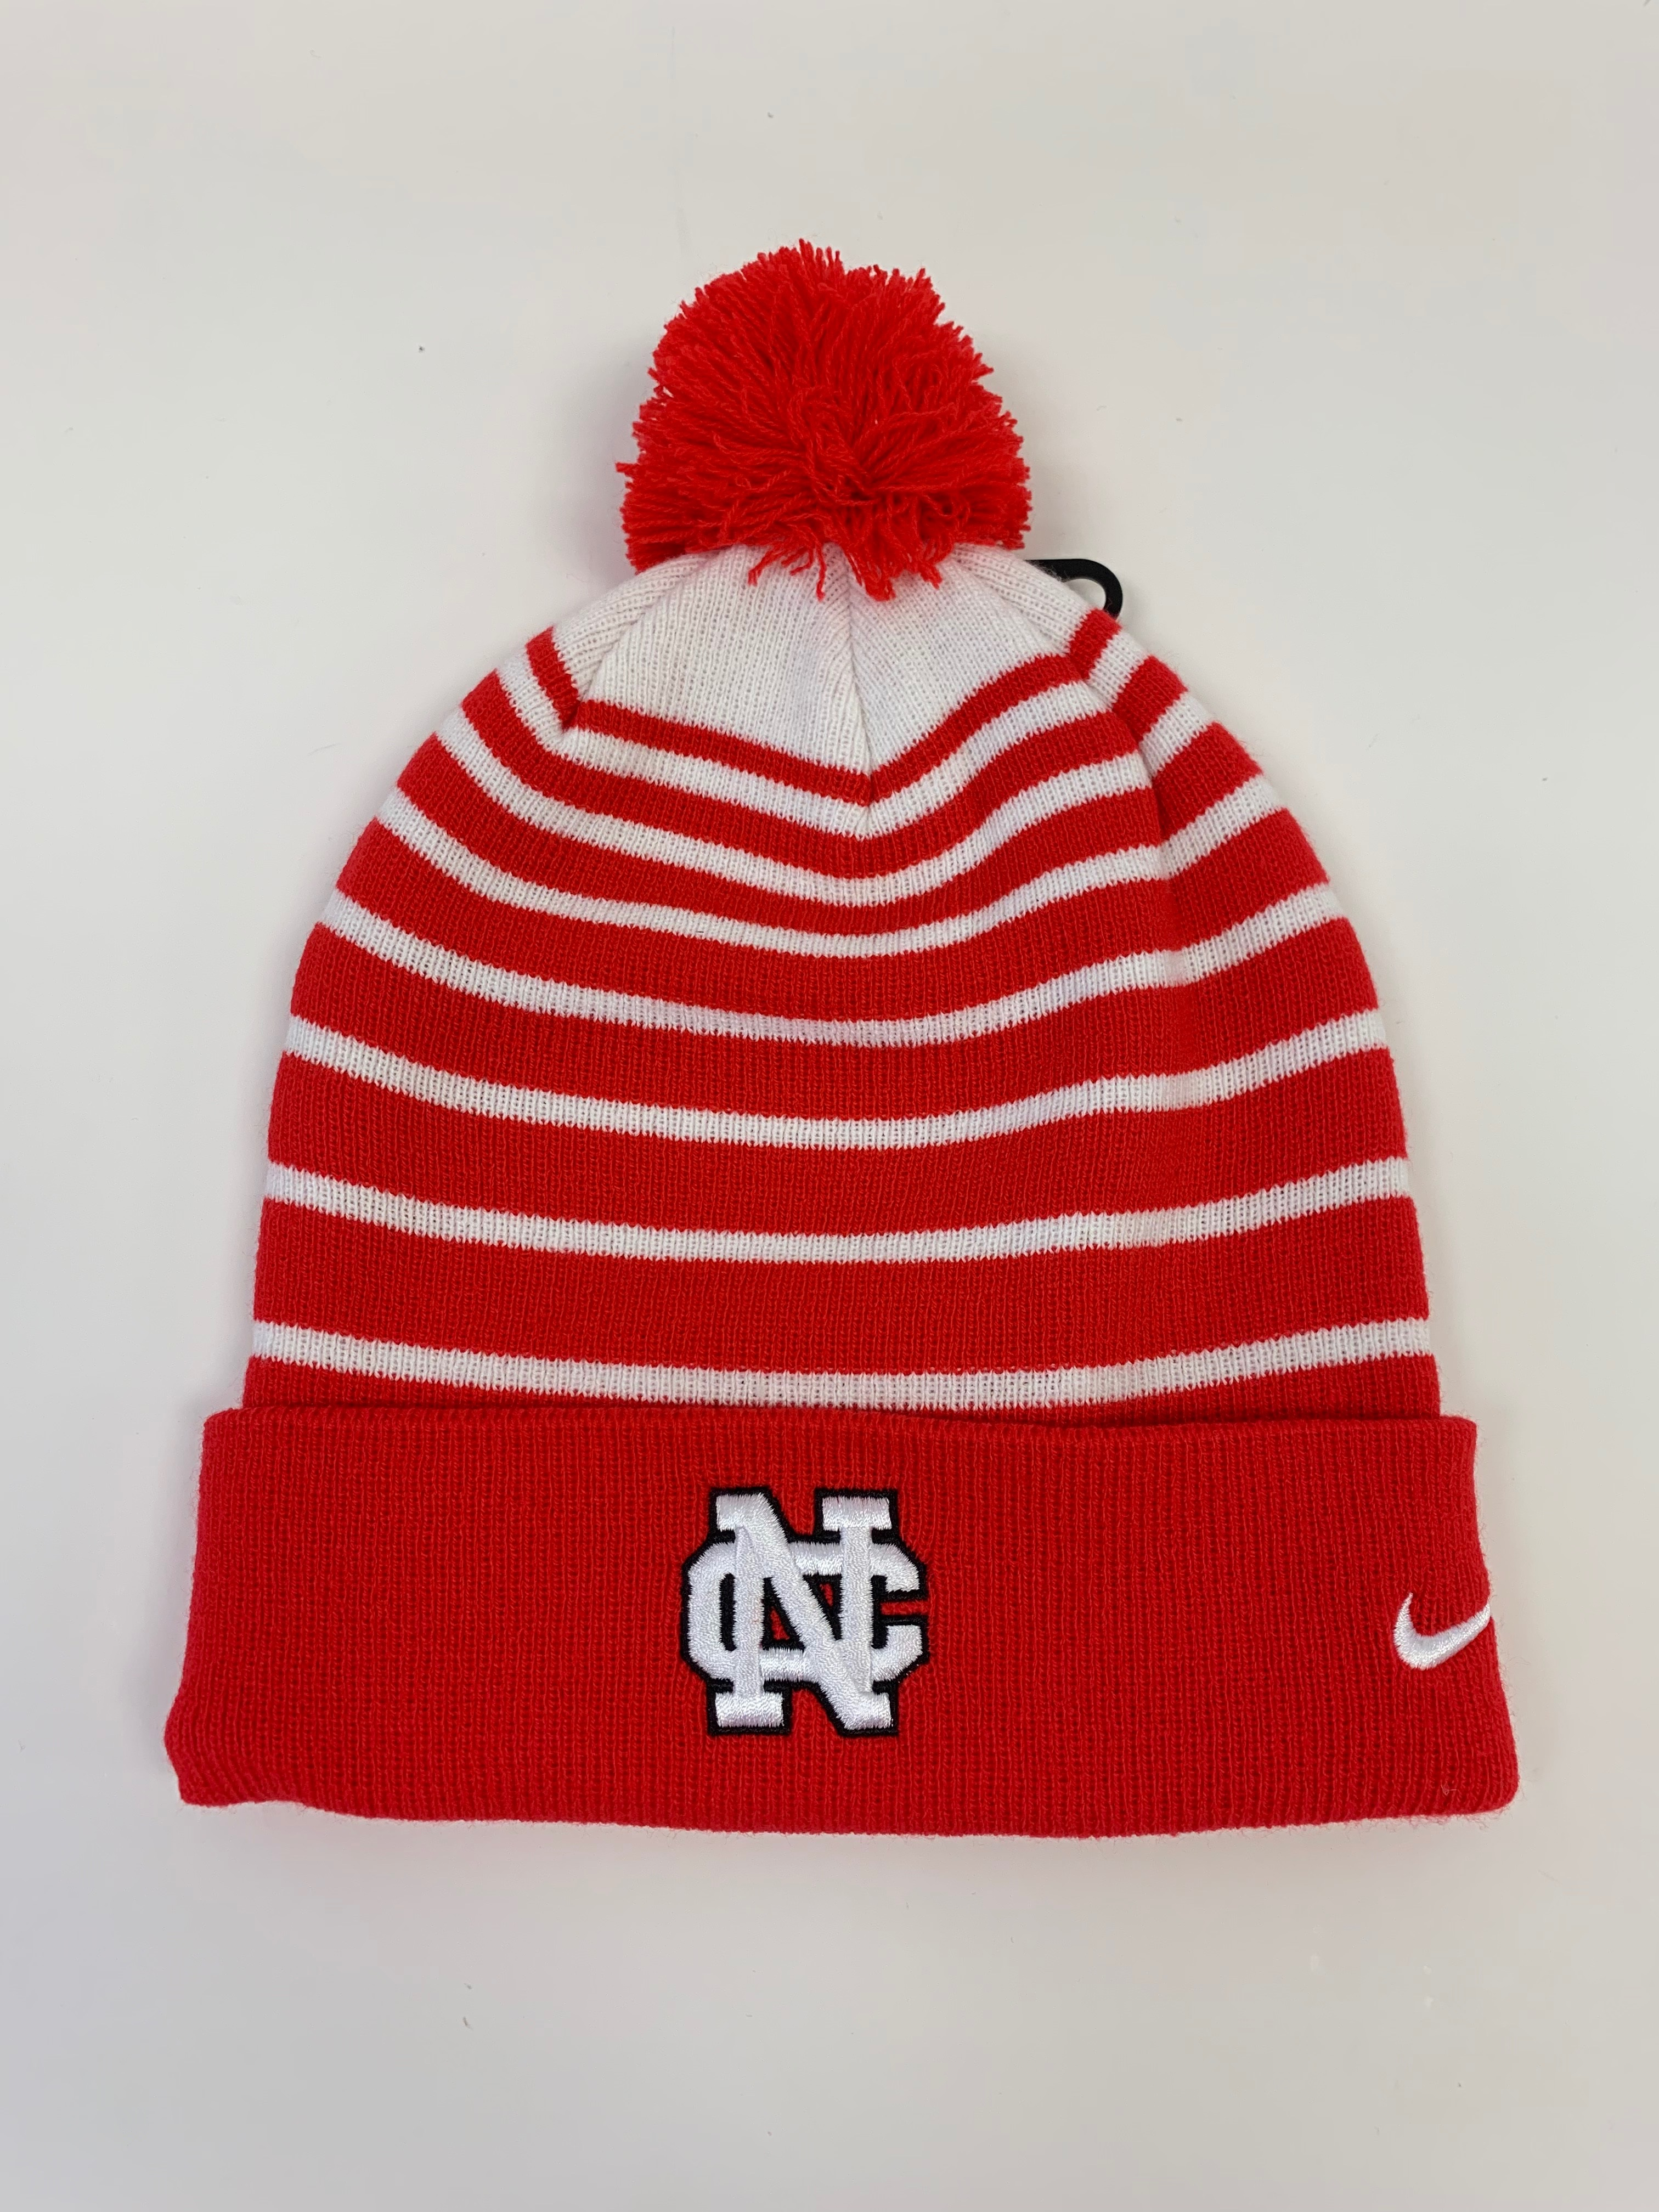 Image for the Nike Sideline Pom Beanie product